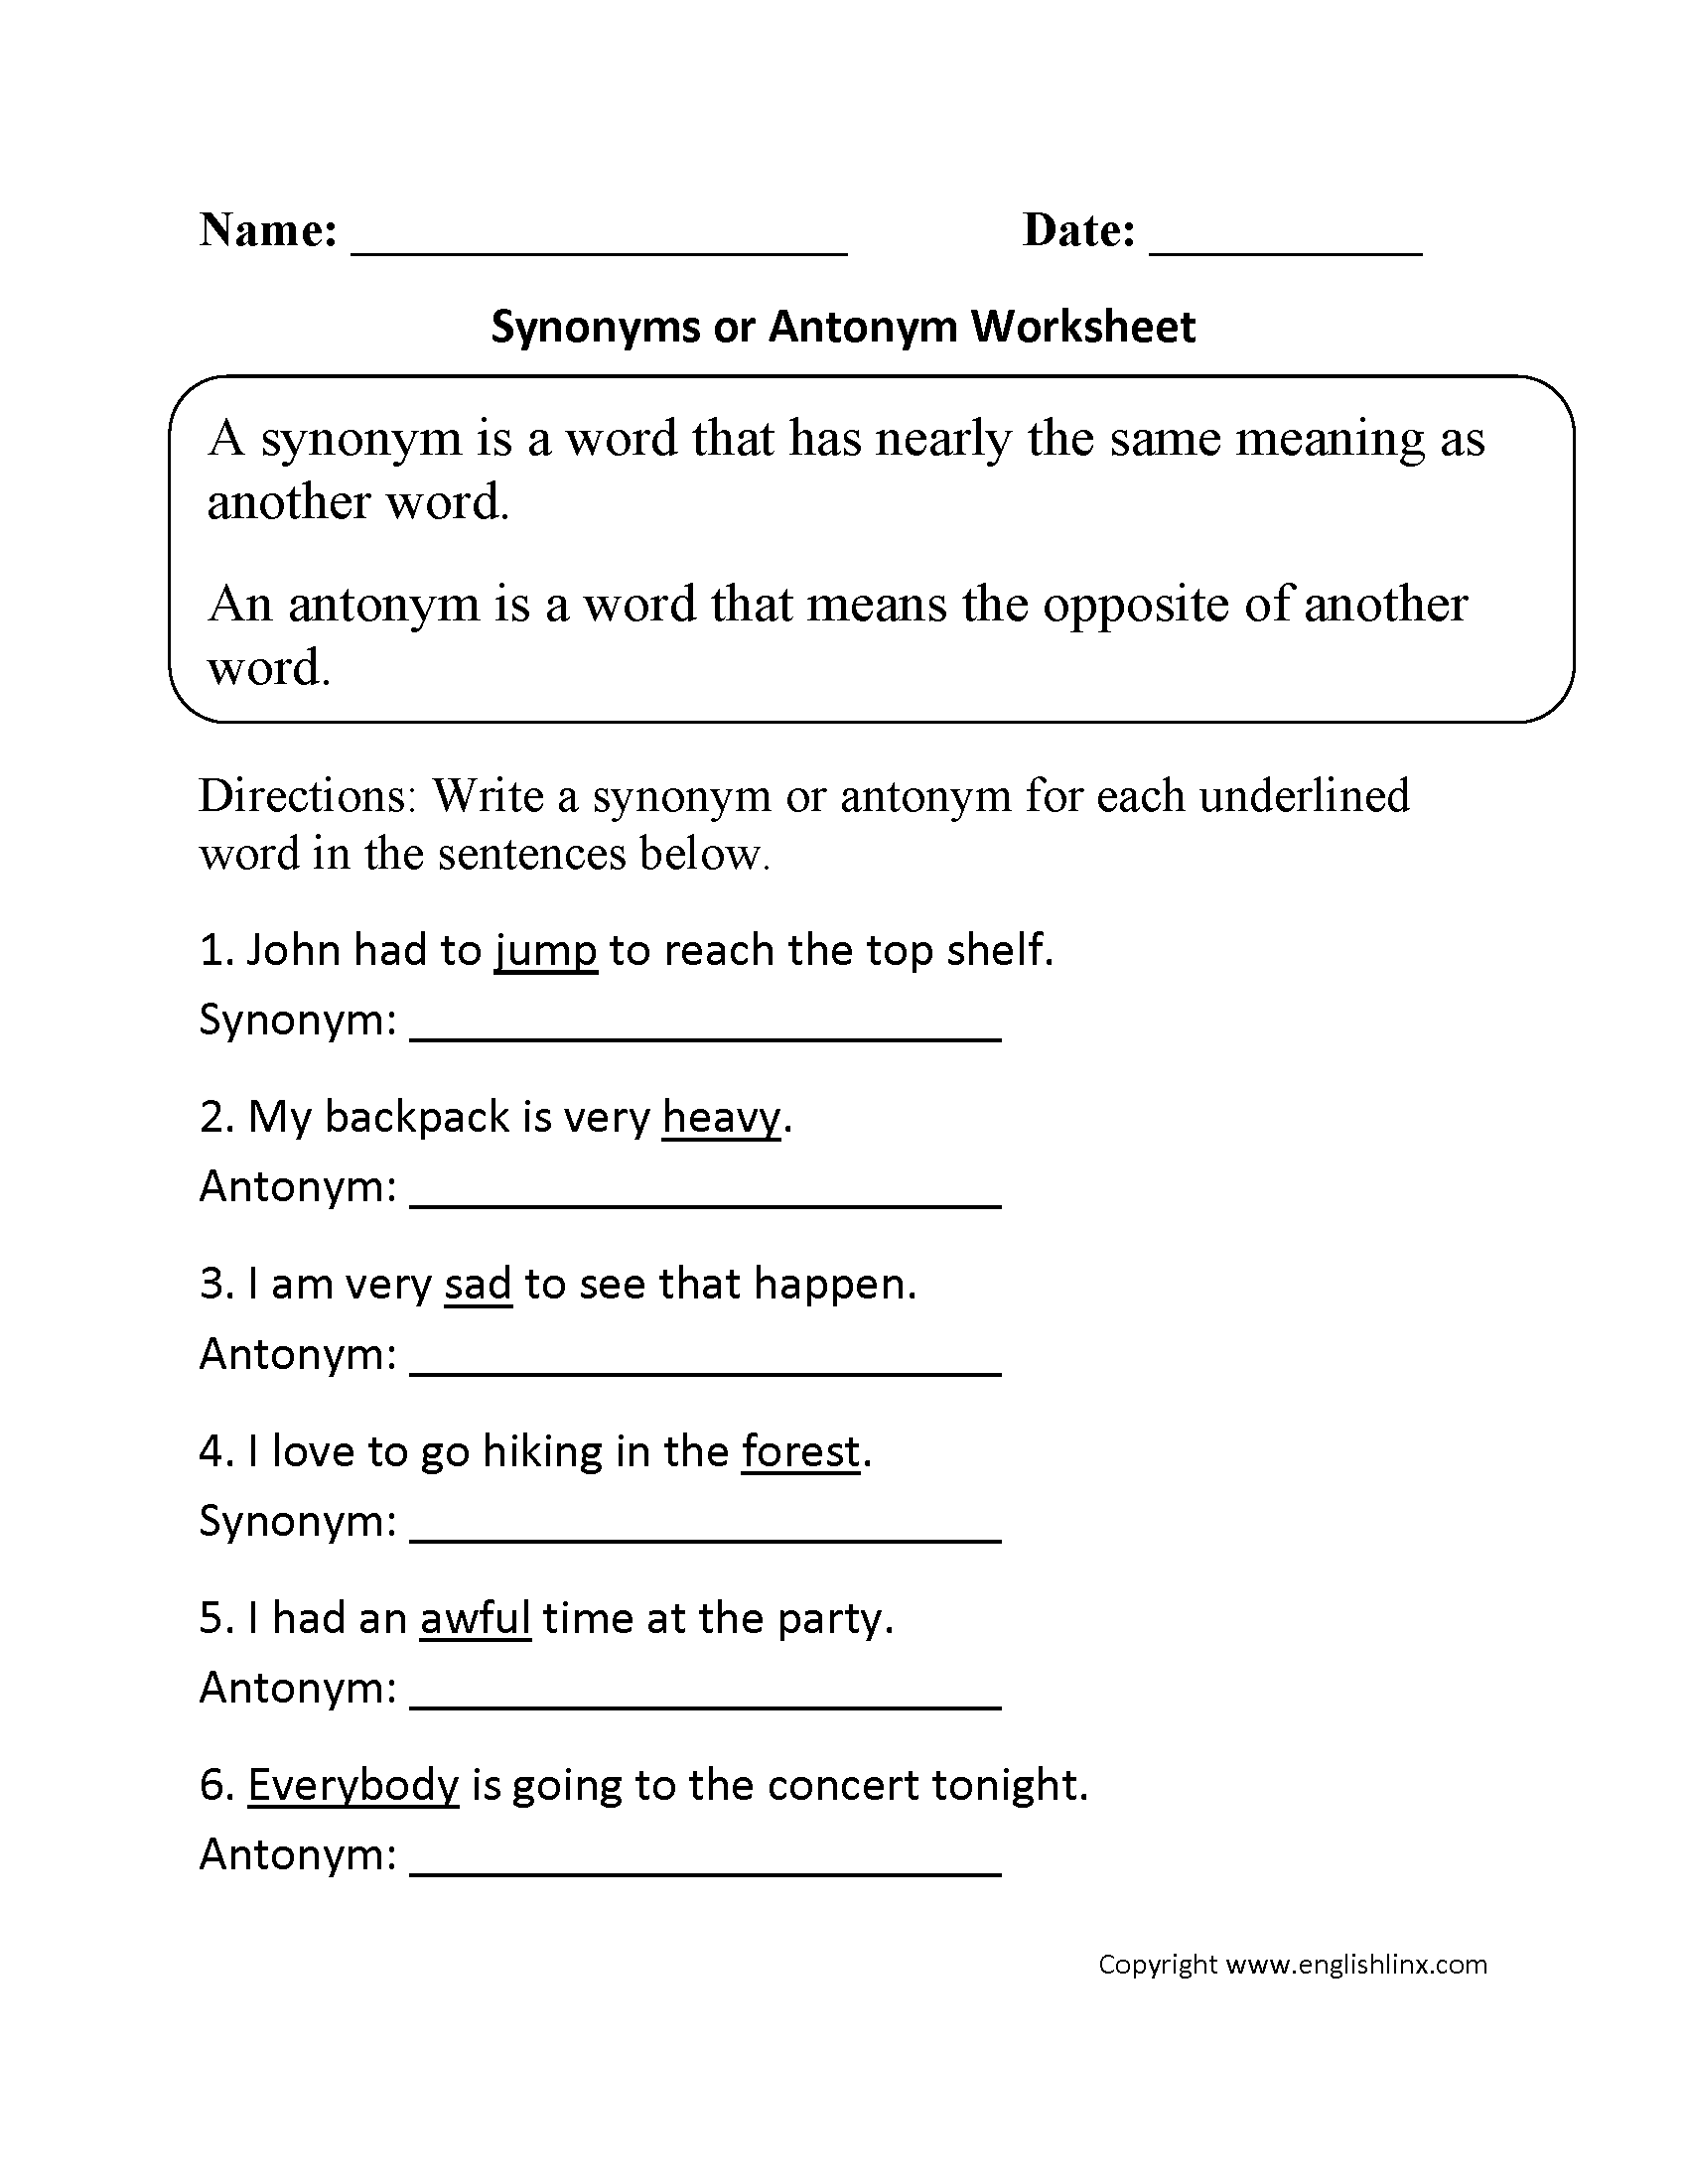 Vocabulary Worksheets – Synonym Antonym Worksheet